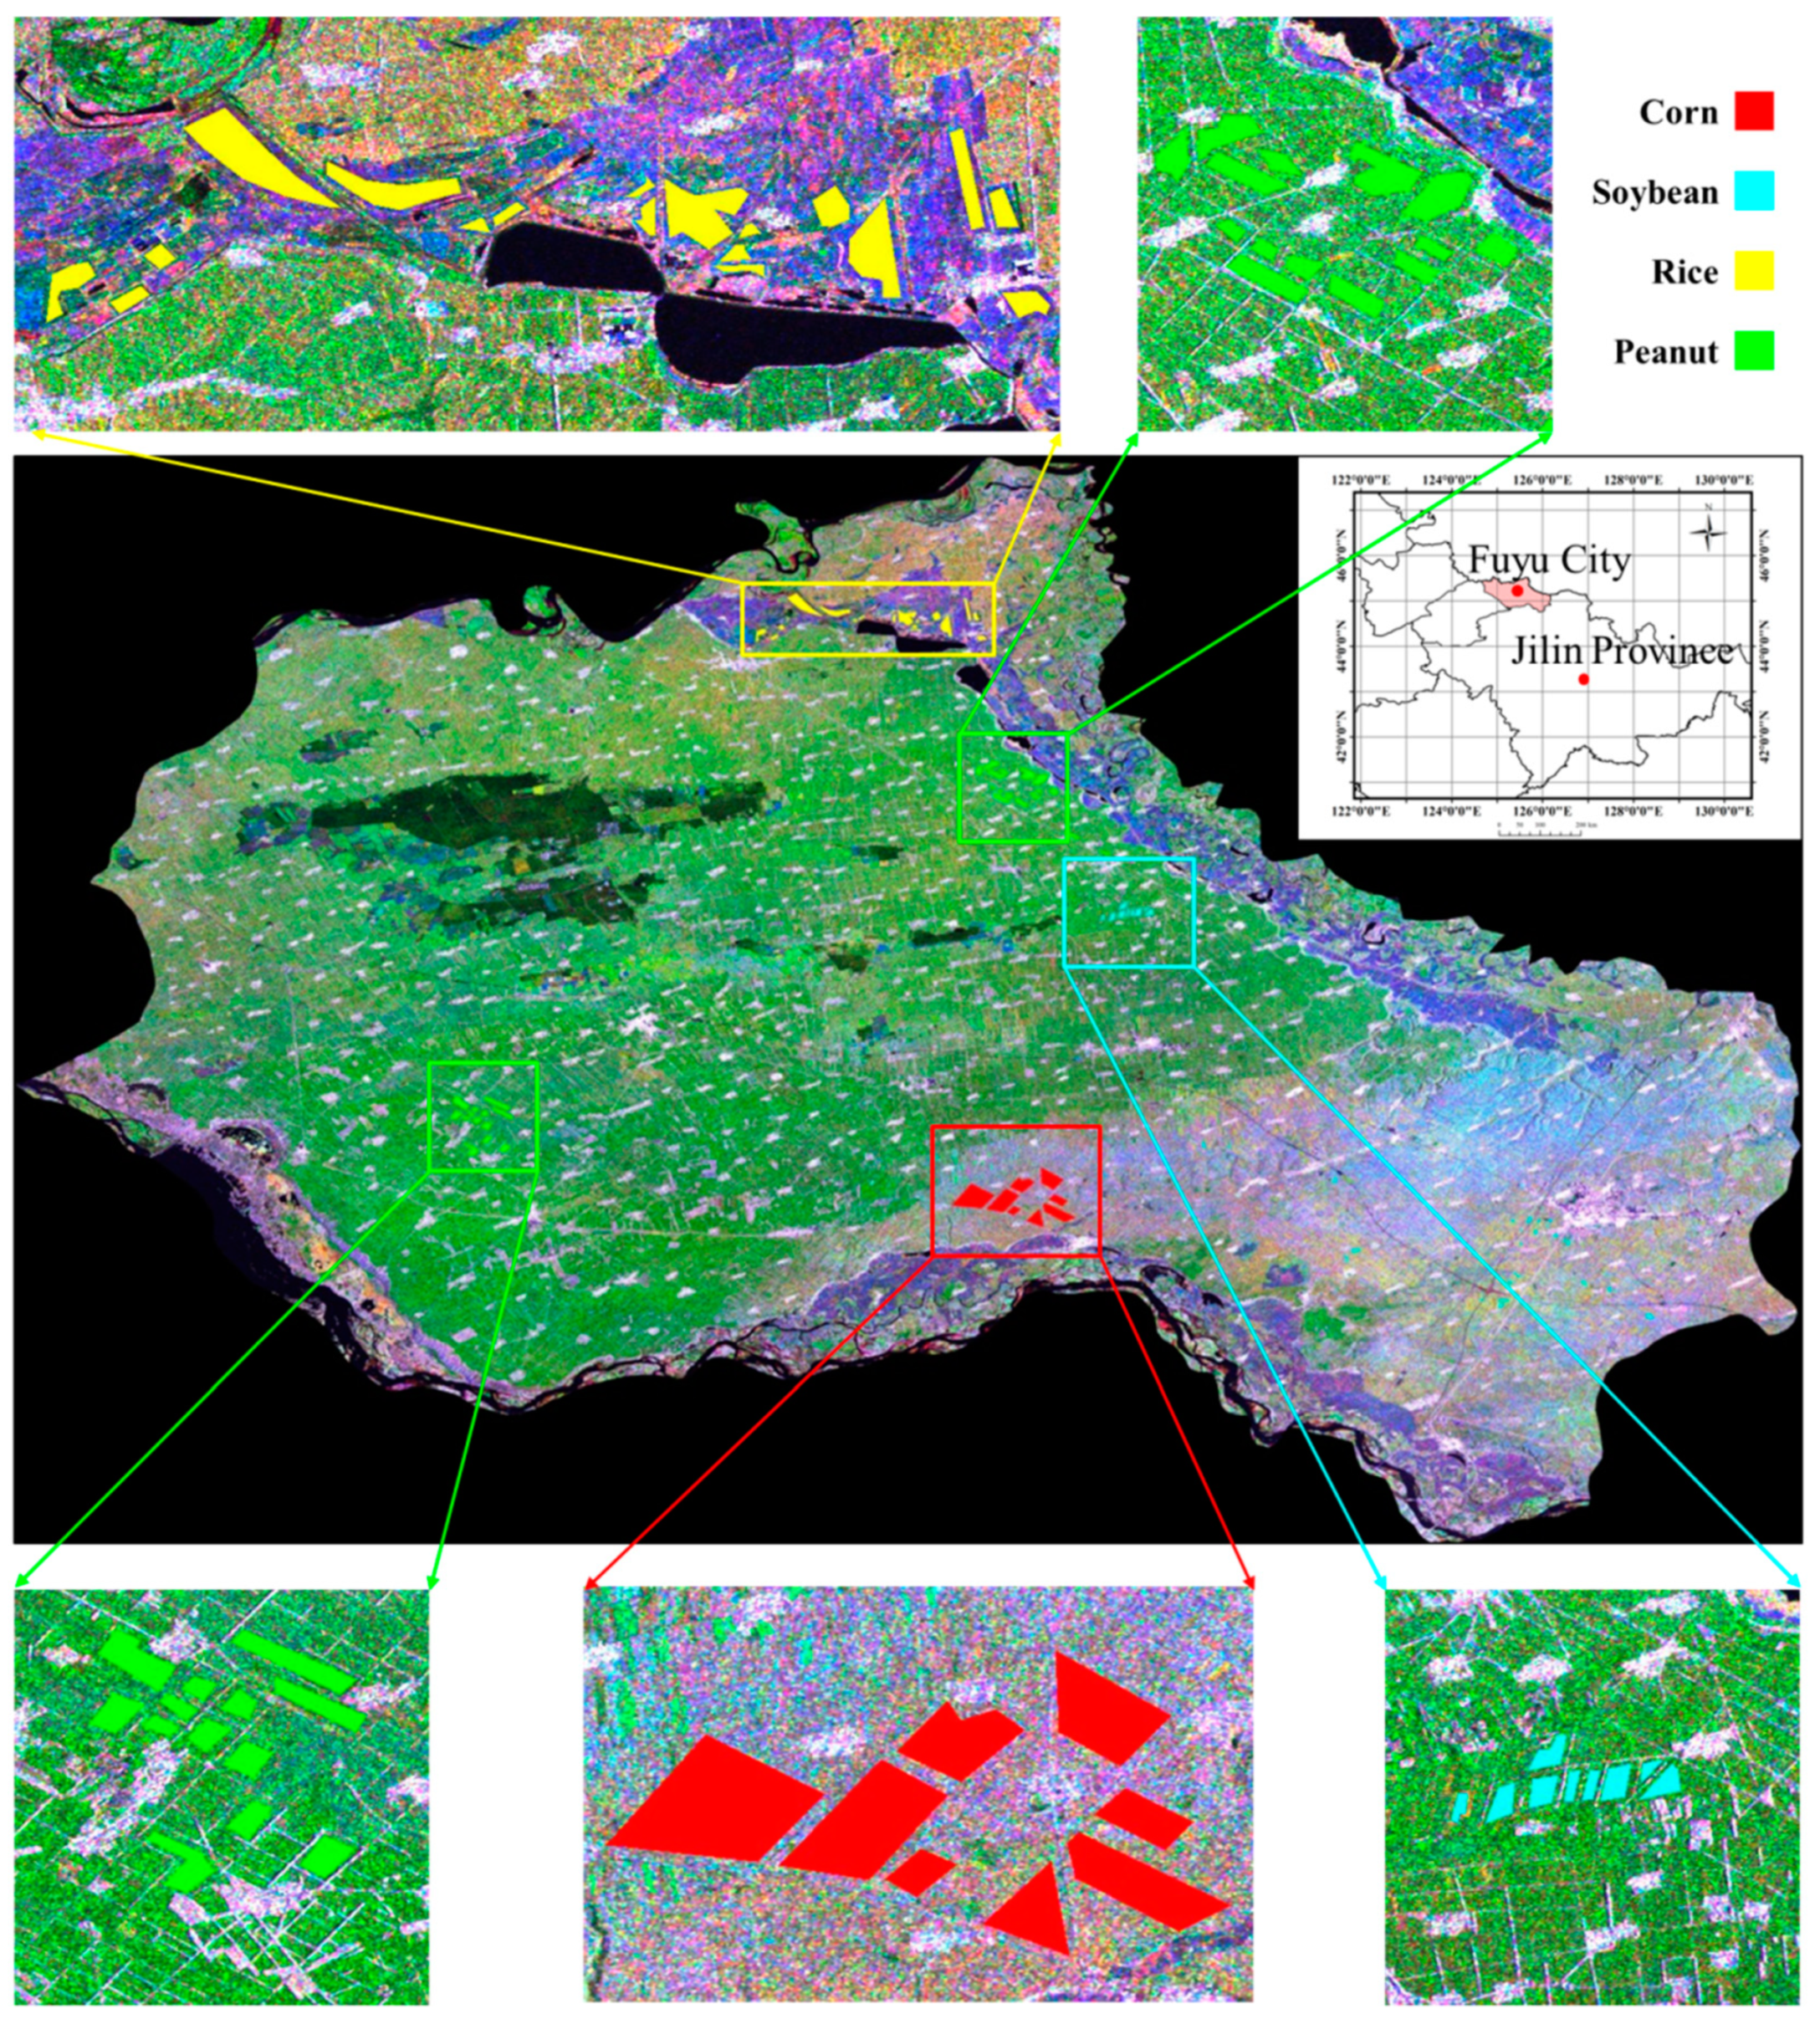 Remote Sensing | Free Full-Text | Crop Classification Based on ...